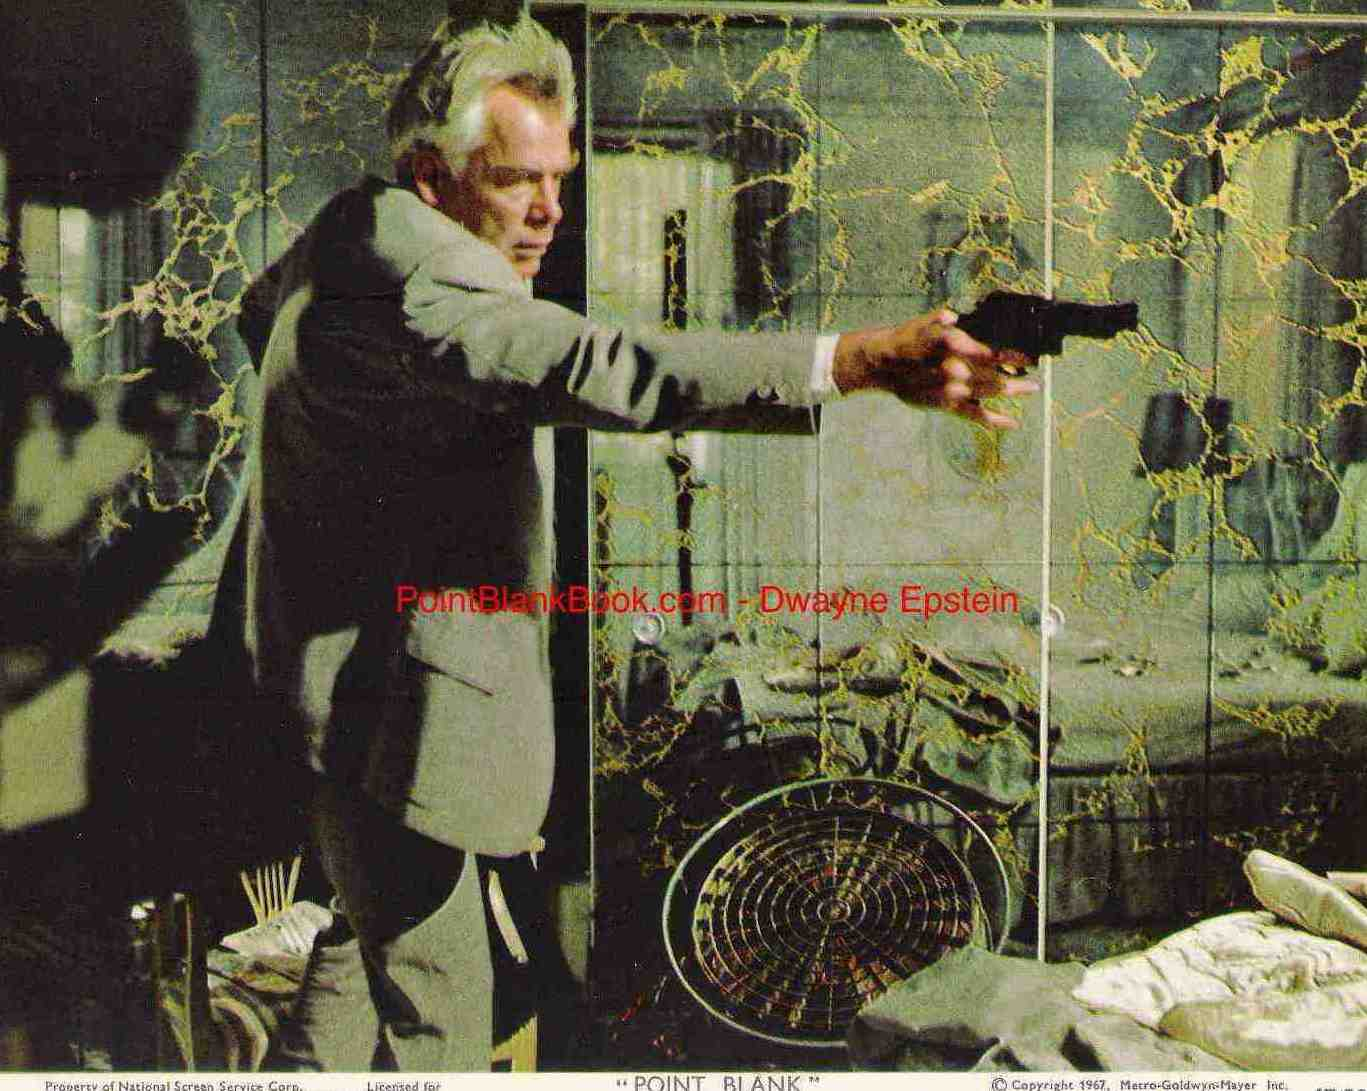 Lobby card from Point Blank showing why it was called the first Arthouse action film.